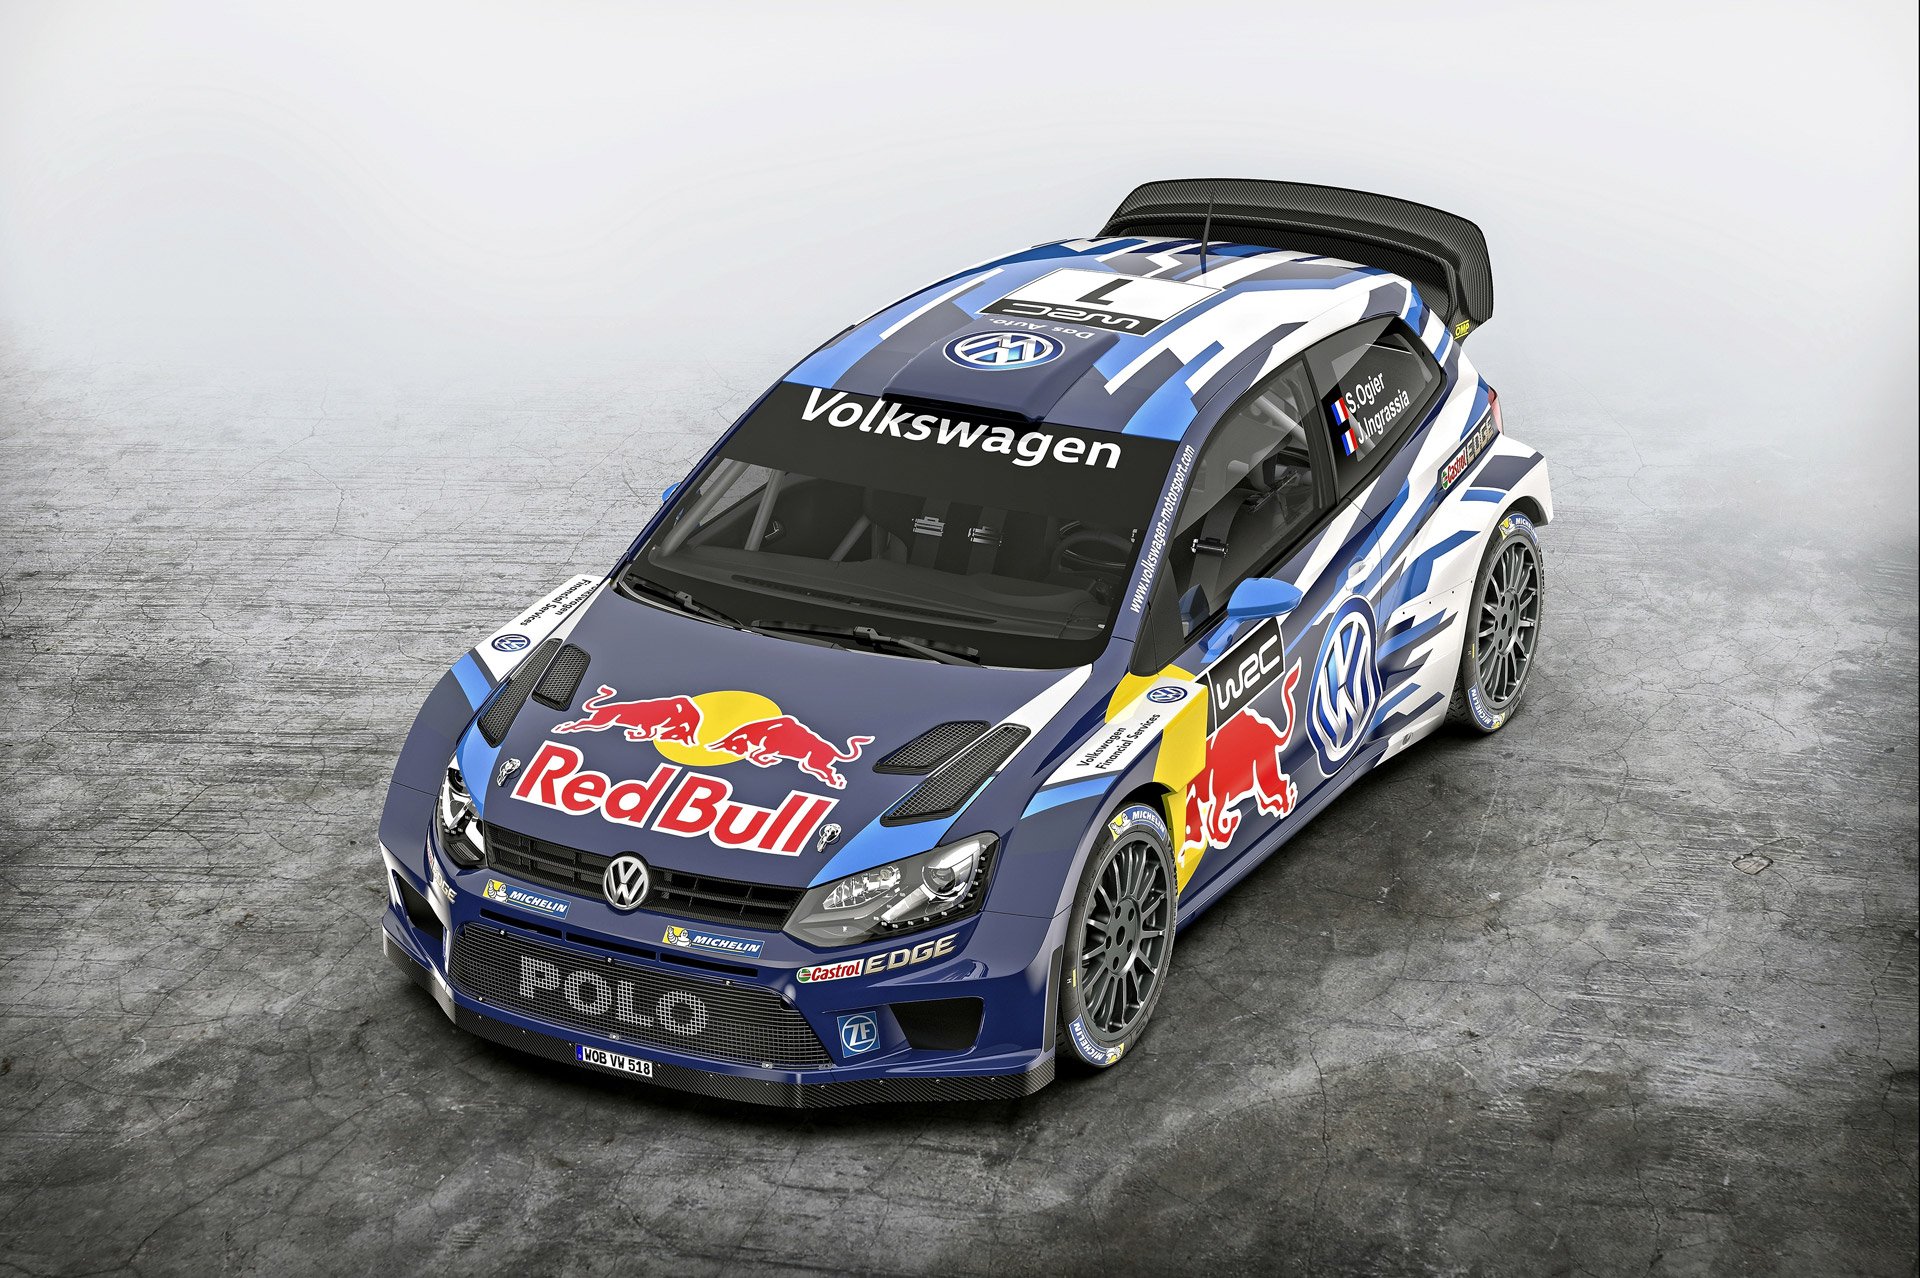 New Volkswagen Polo R Wrc Revealed Ahead Of 2015